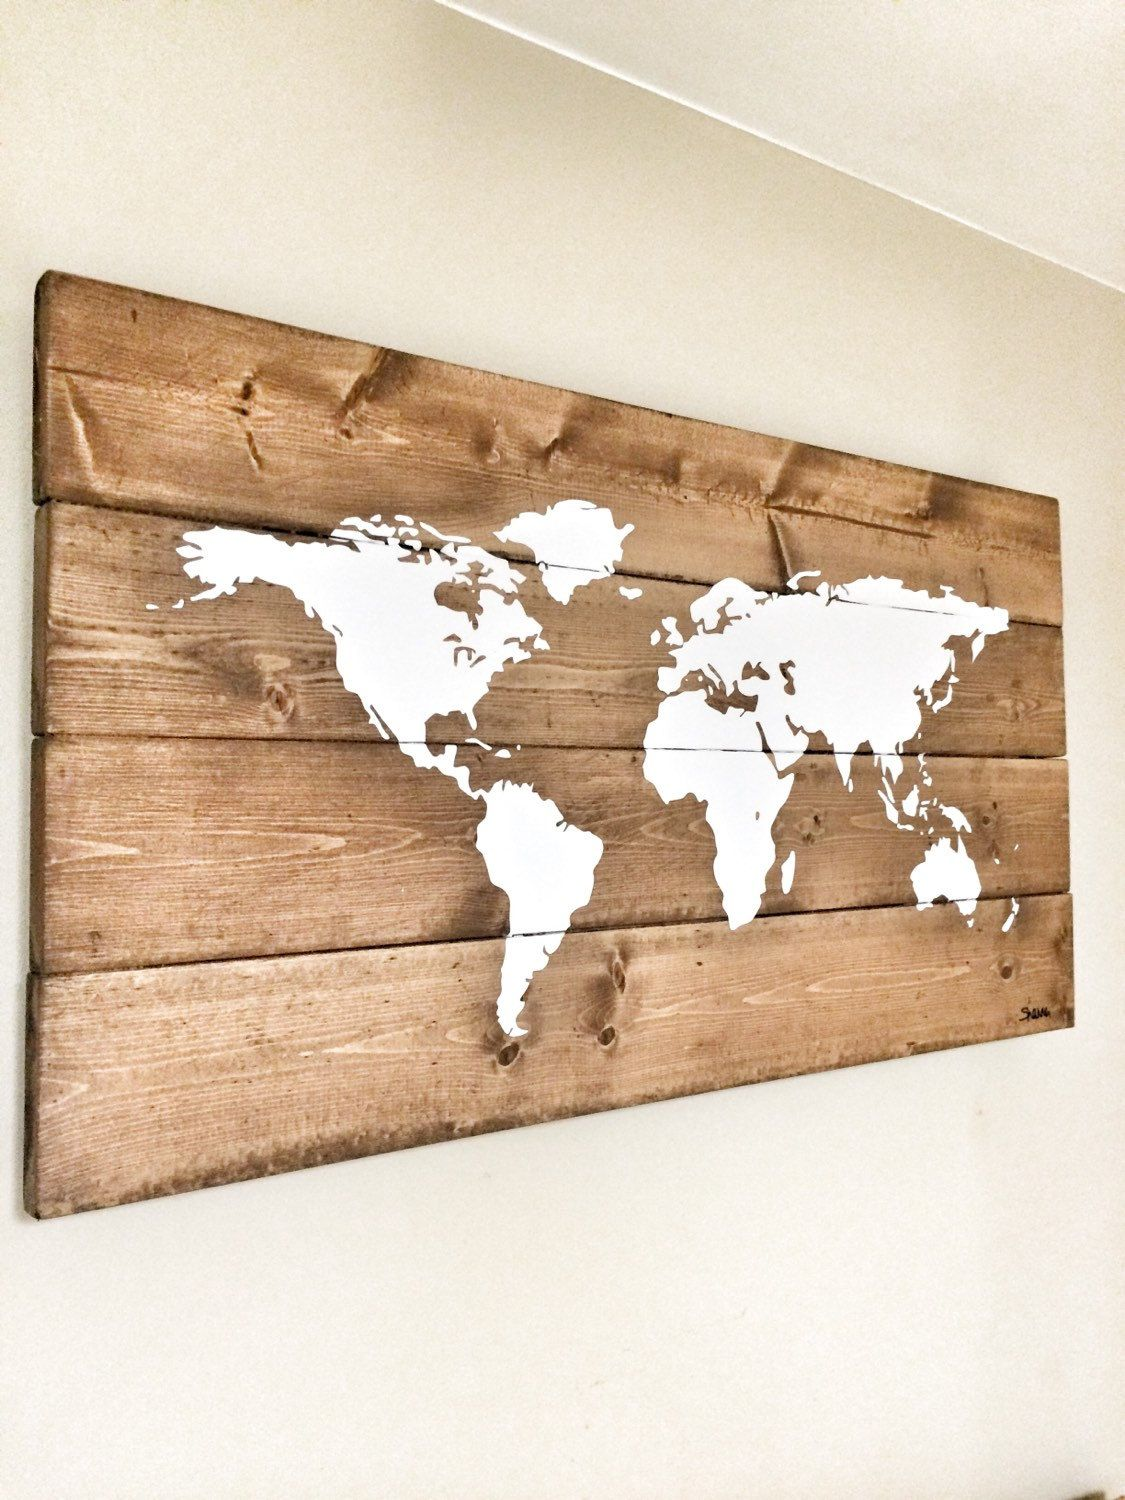 Map of the World Map Wooden Travel Pin Map Rustic Home Wood Wall Art Decorative Wall Map on